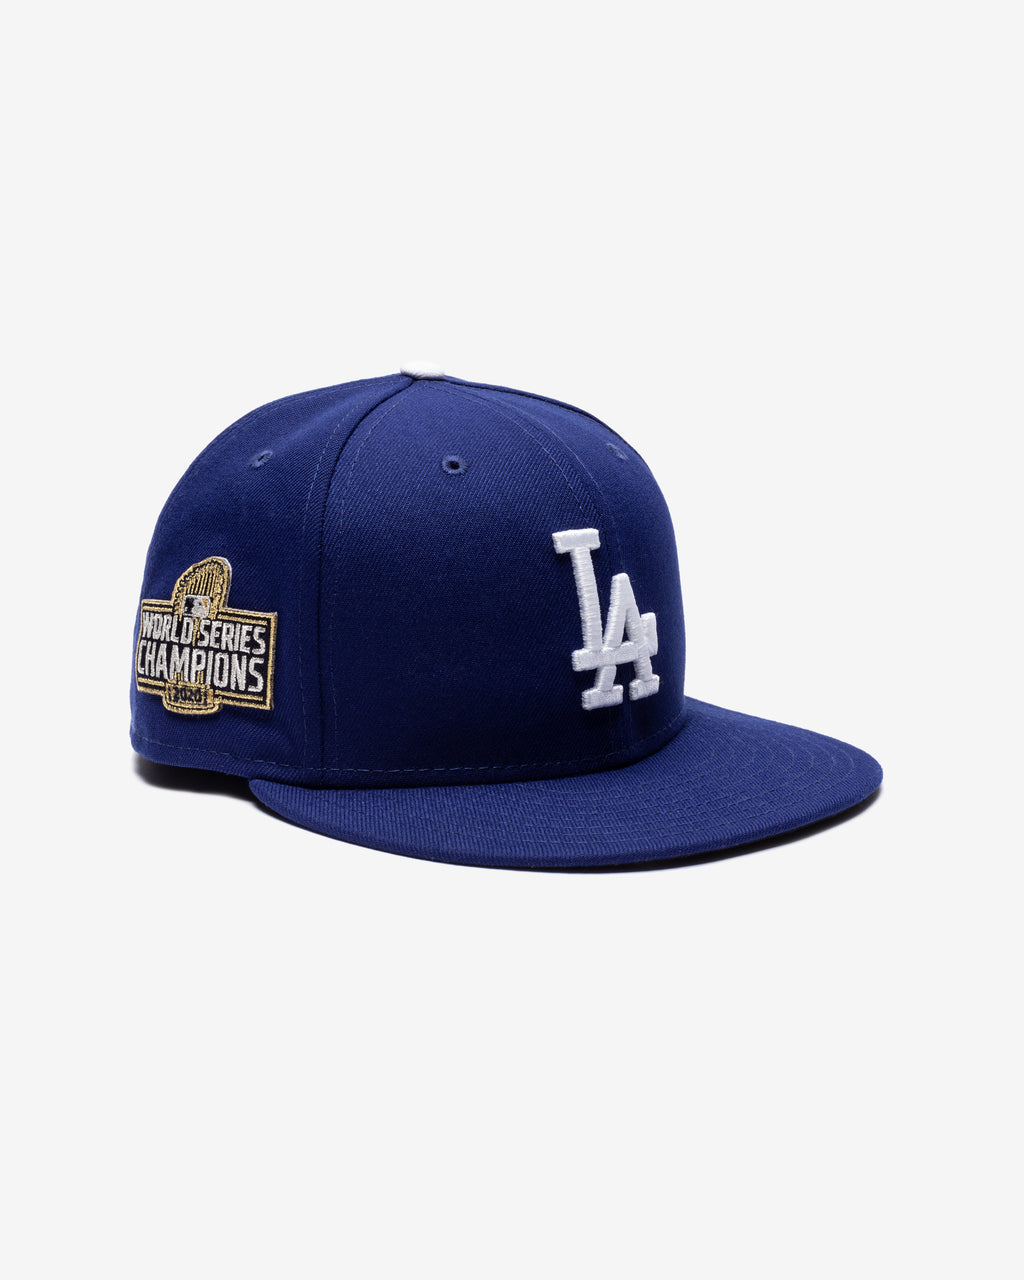 NEW ERA LA DODGERS WS CHAMPS SP FITTED - BLUE